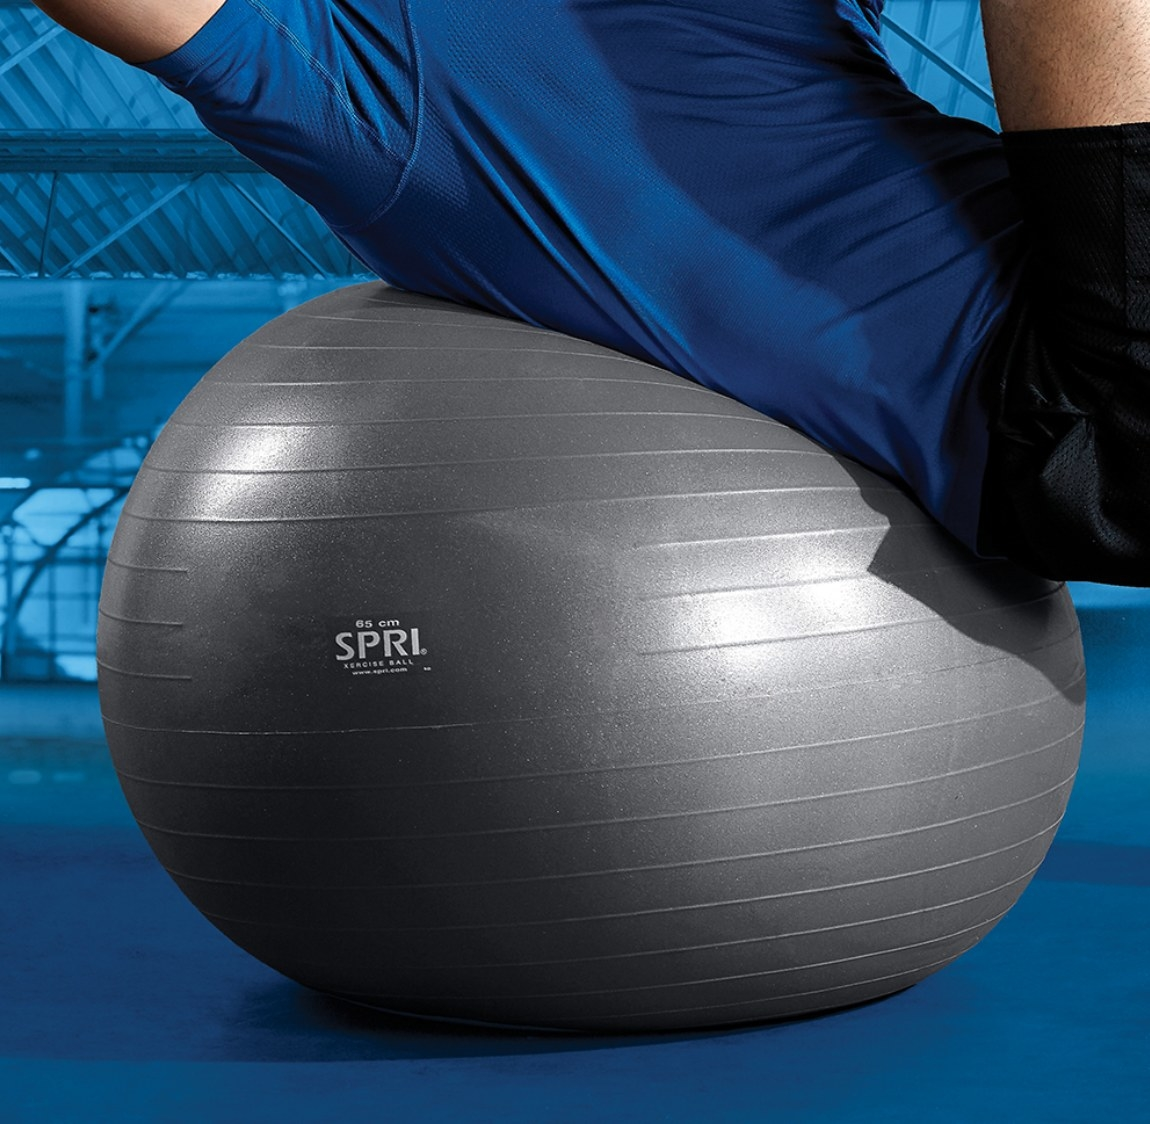 The stability ball in 65 cm